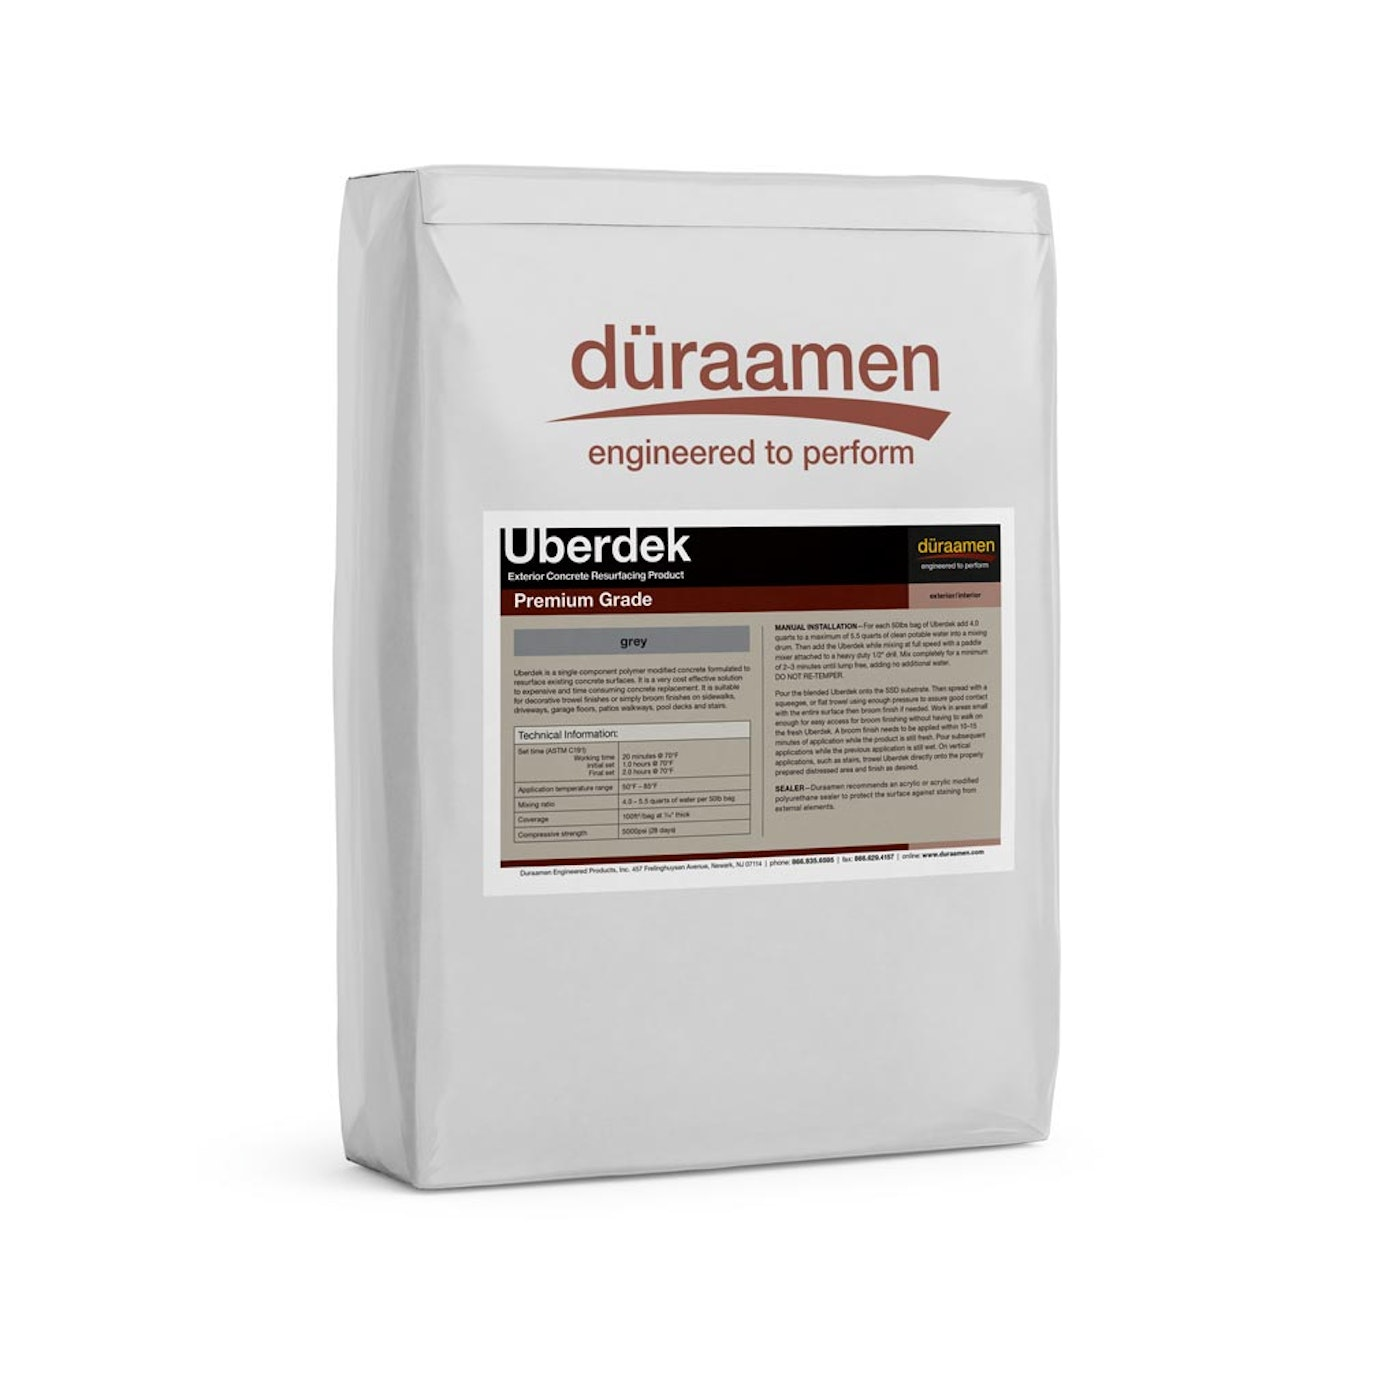 Uberdek exterior concrete resurfacing overlay - Exterior concrete resurfacing products ...